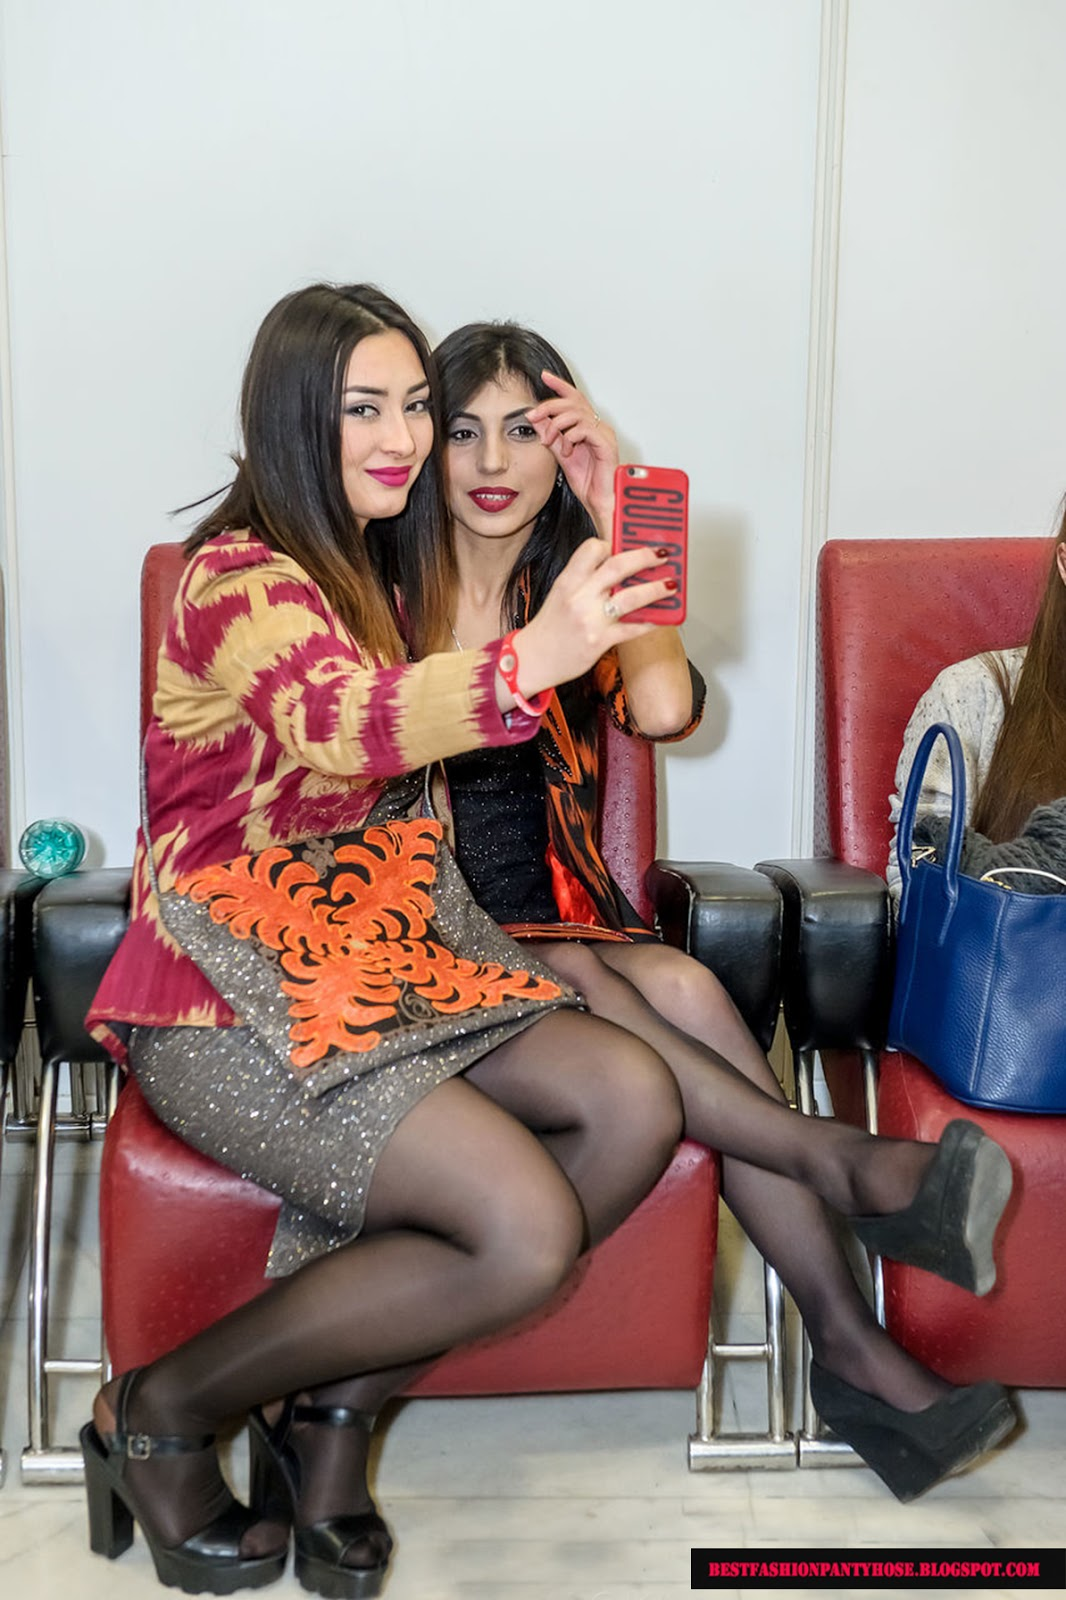 Strumpfhosen Ladies